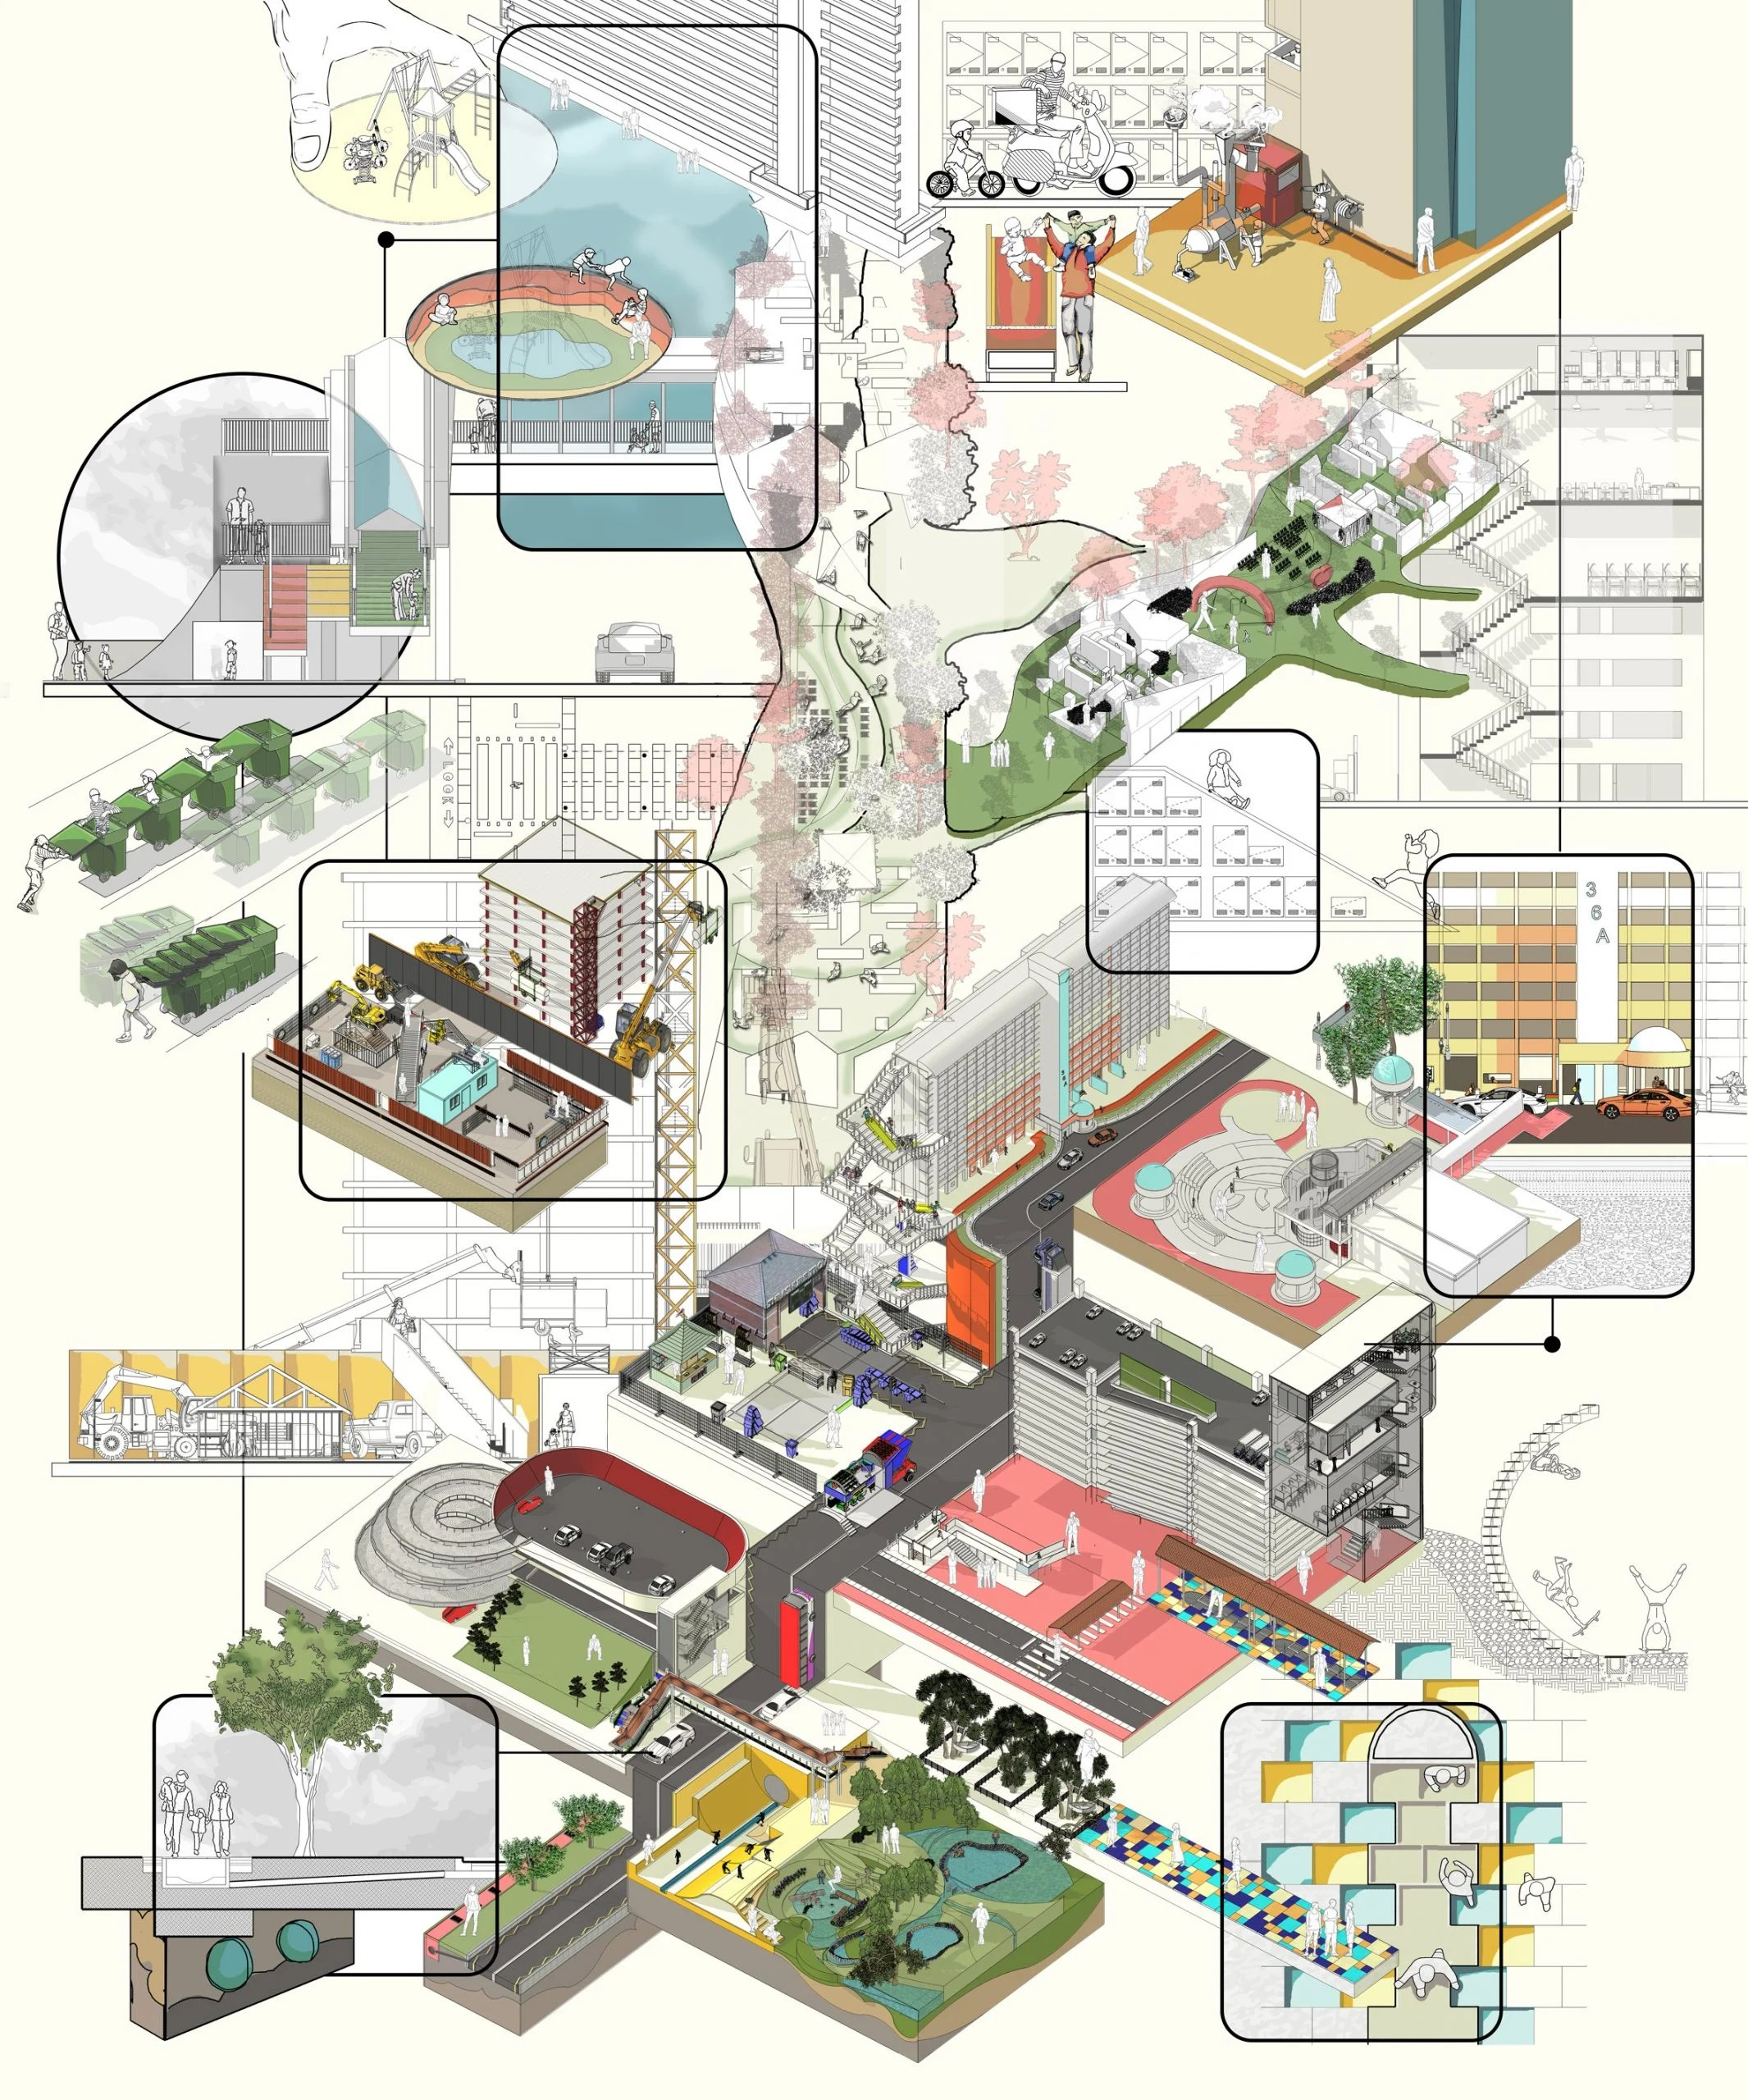 Graduates from National University of Singapore future-proof their city